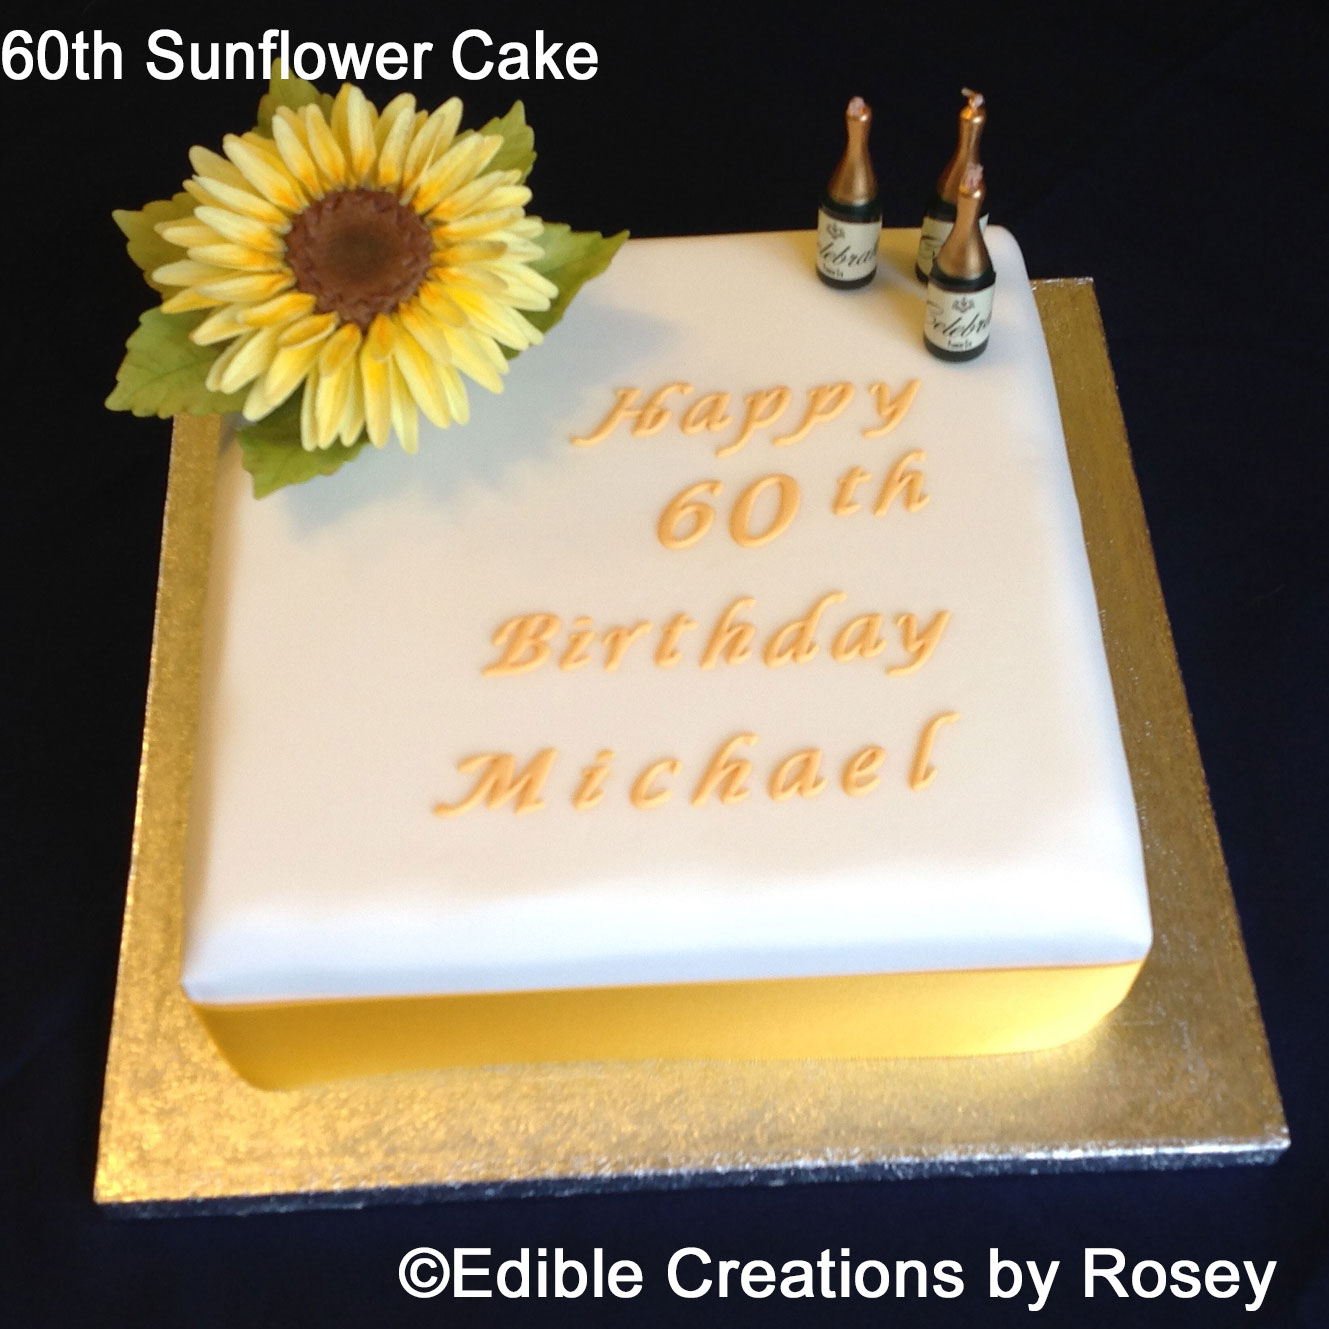 Groovy Birthday Cakes By Edible Creations By Rosey In South West London Personalised Birthday Cards Paralily Jamesorg